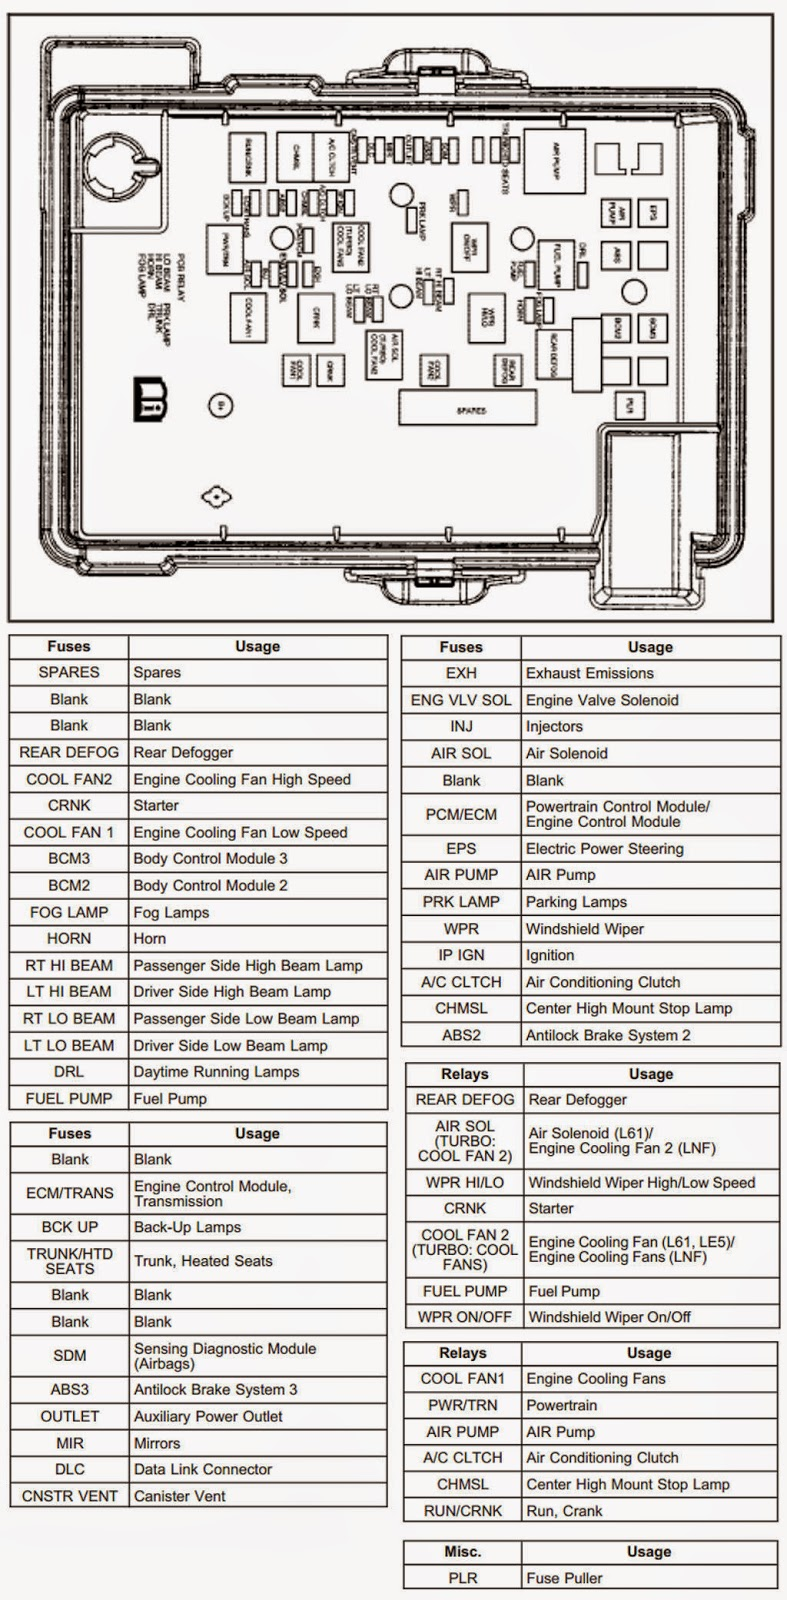 WRG-1056] 2005 Chevrolet Silverado Fuse Panel Diagram